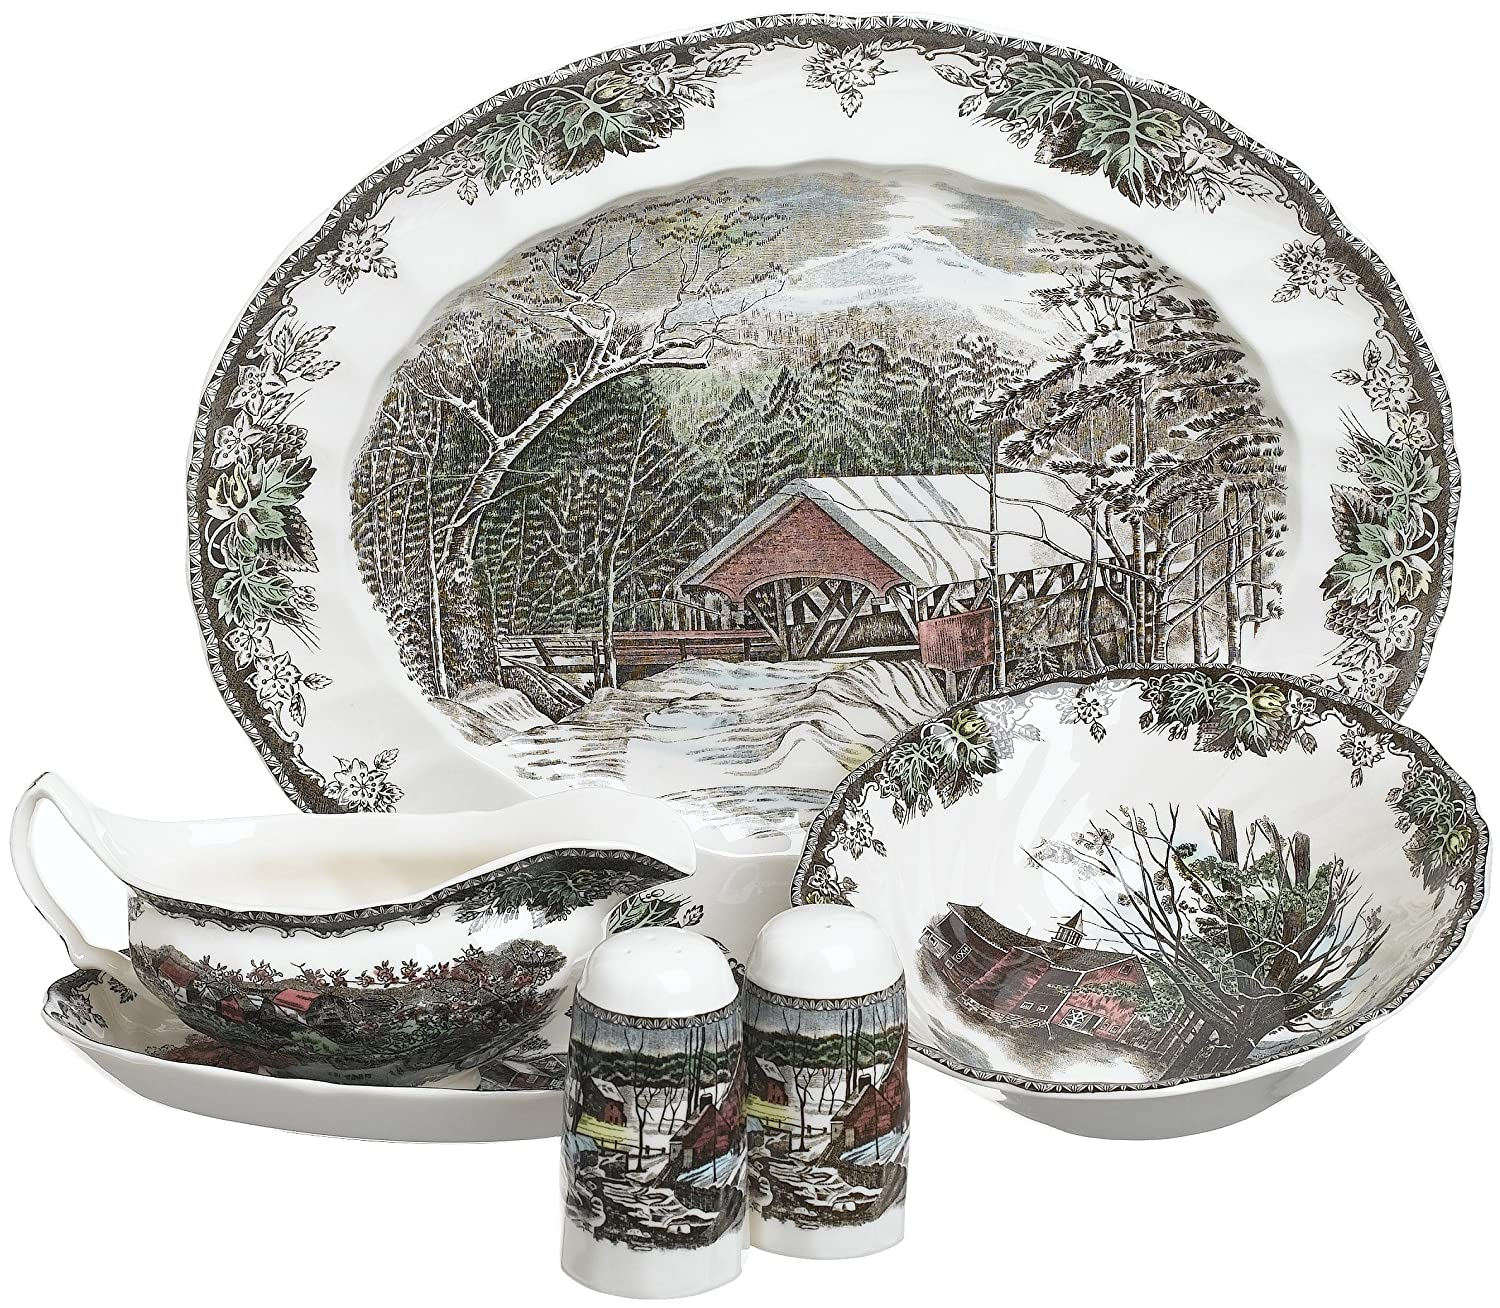 Christmas Tablescape Décor - Friendly Village 6-Piece Completer Set - by Johnson Brothers